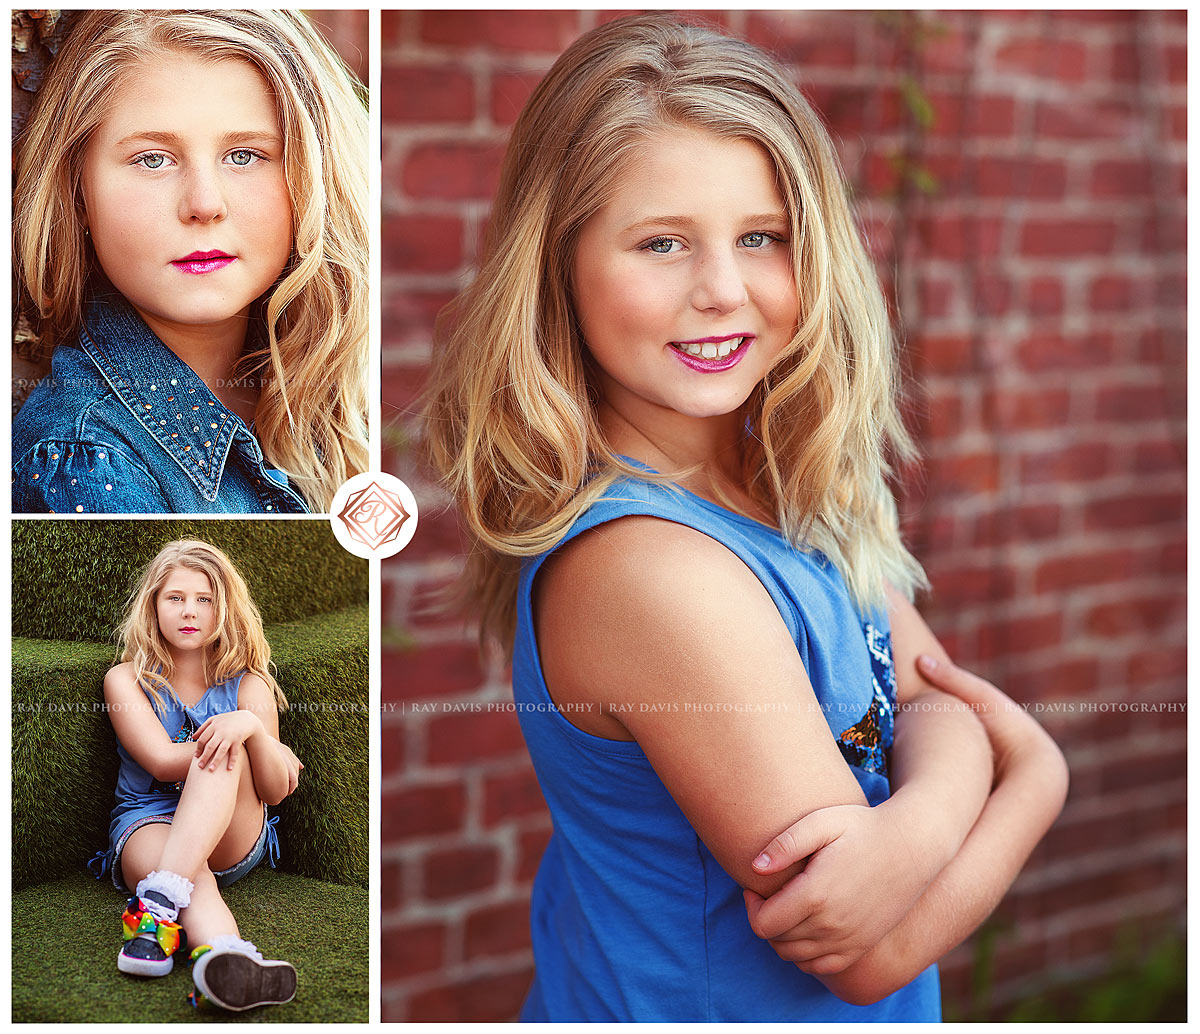 Tween Girl portraits from child photosession in mixed urban style